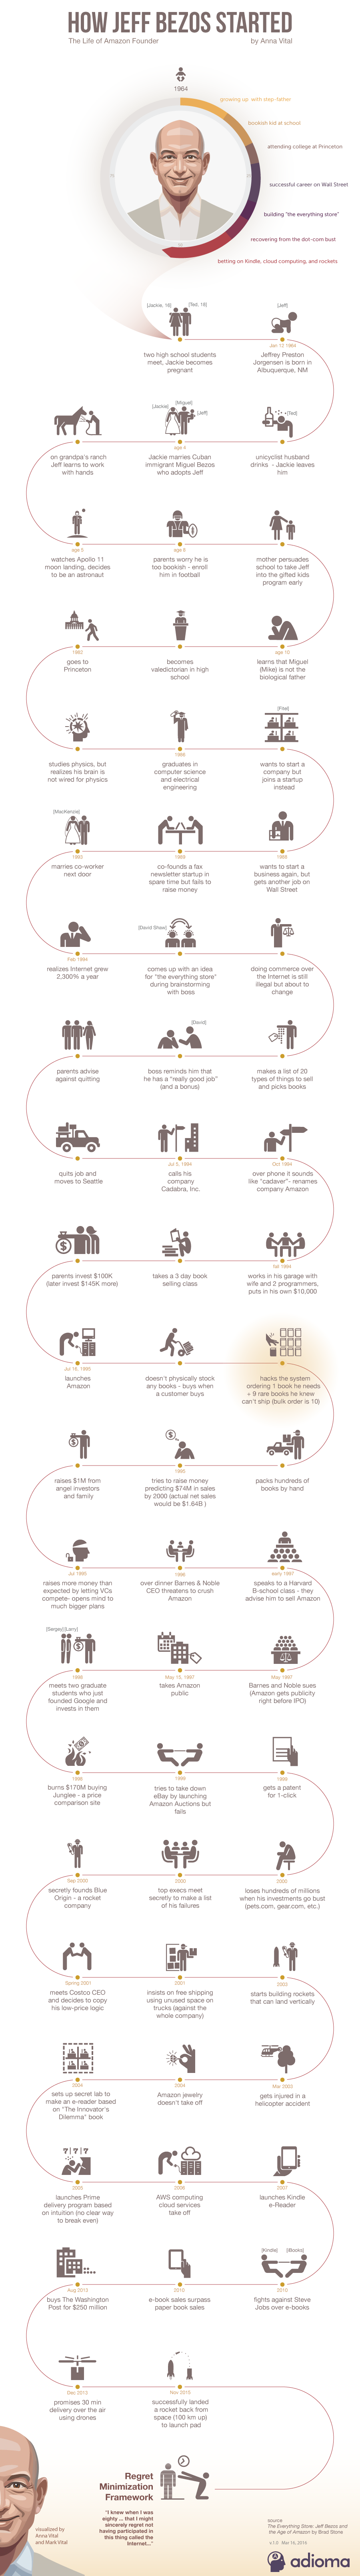 How Jeff Bezos Started - Infographic Biography - Adioma